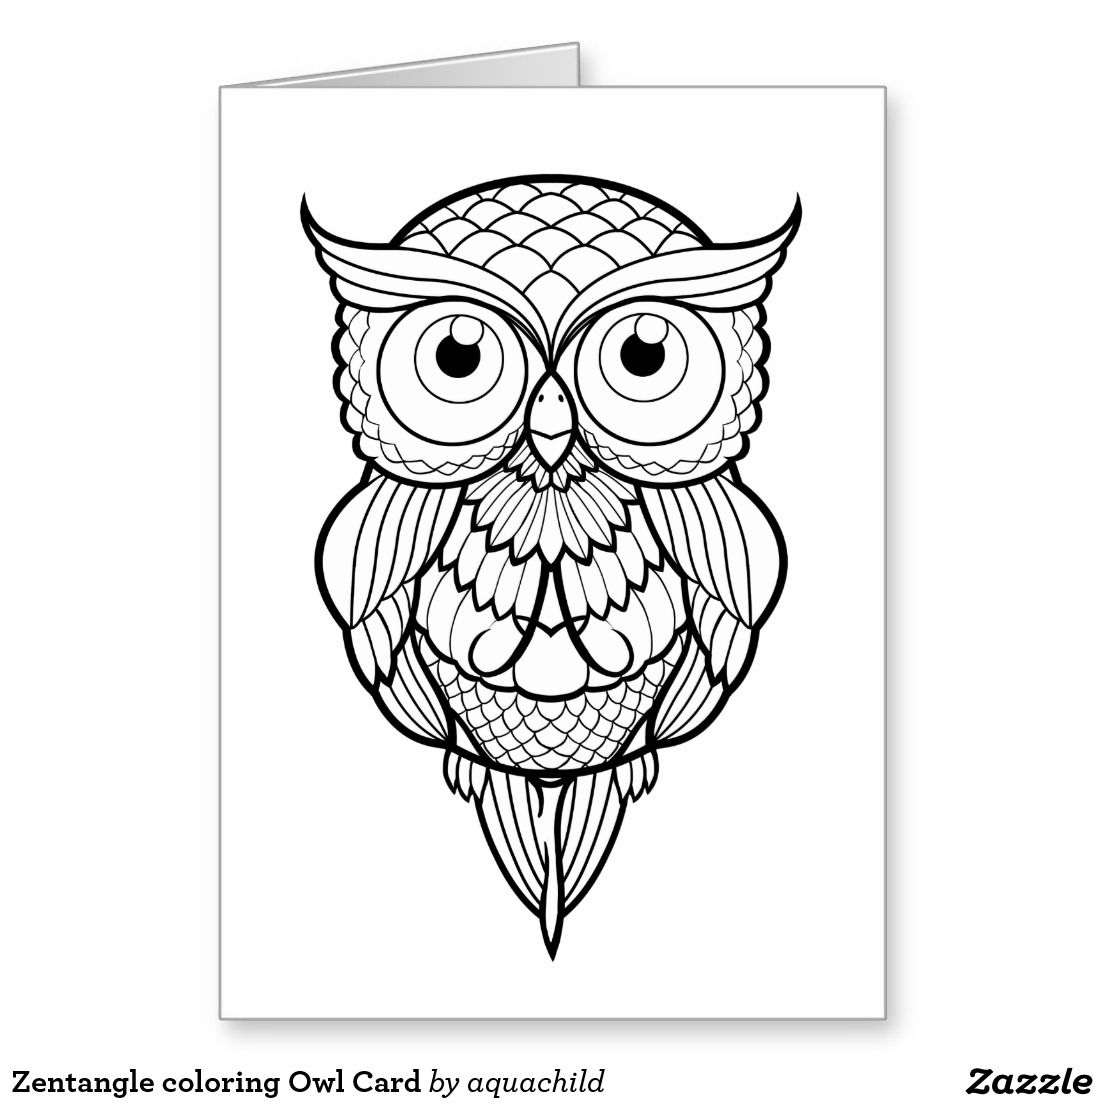 Zentangle Coloring Owl Card Owl Drawing Simple Owls Drawing Owl Coloring Pages